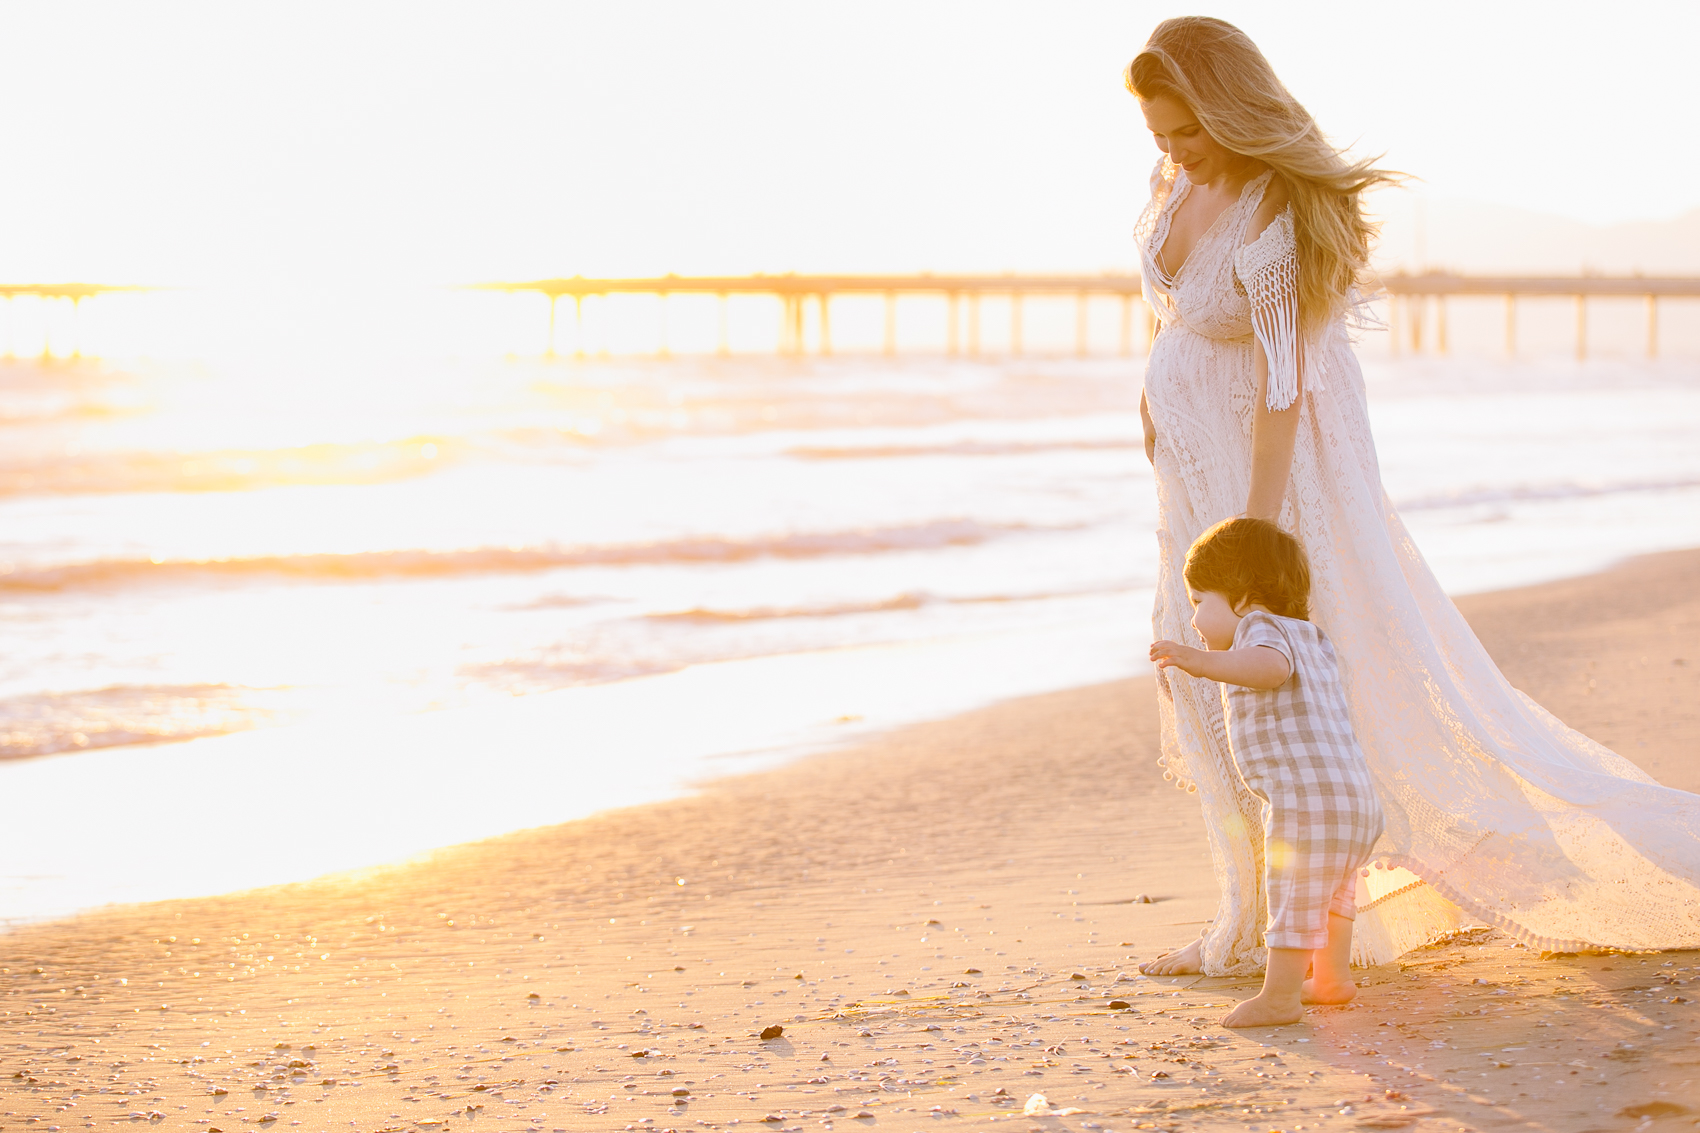 Los_Angeles_Family_Photographer_Maternity_Photos_Baby_Pregnancy_Venice_Beach_Golden_Hour-1169.jpg